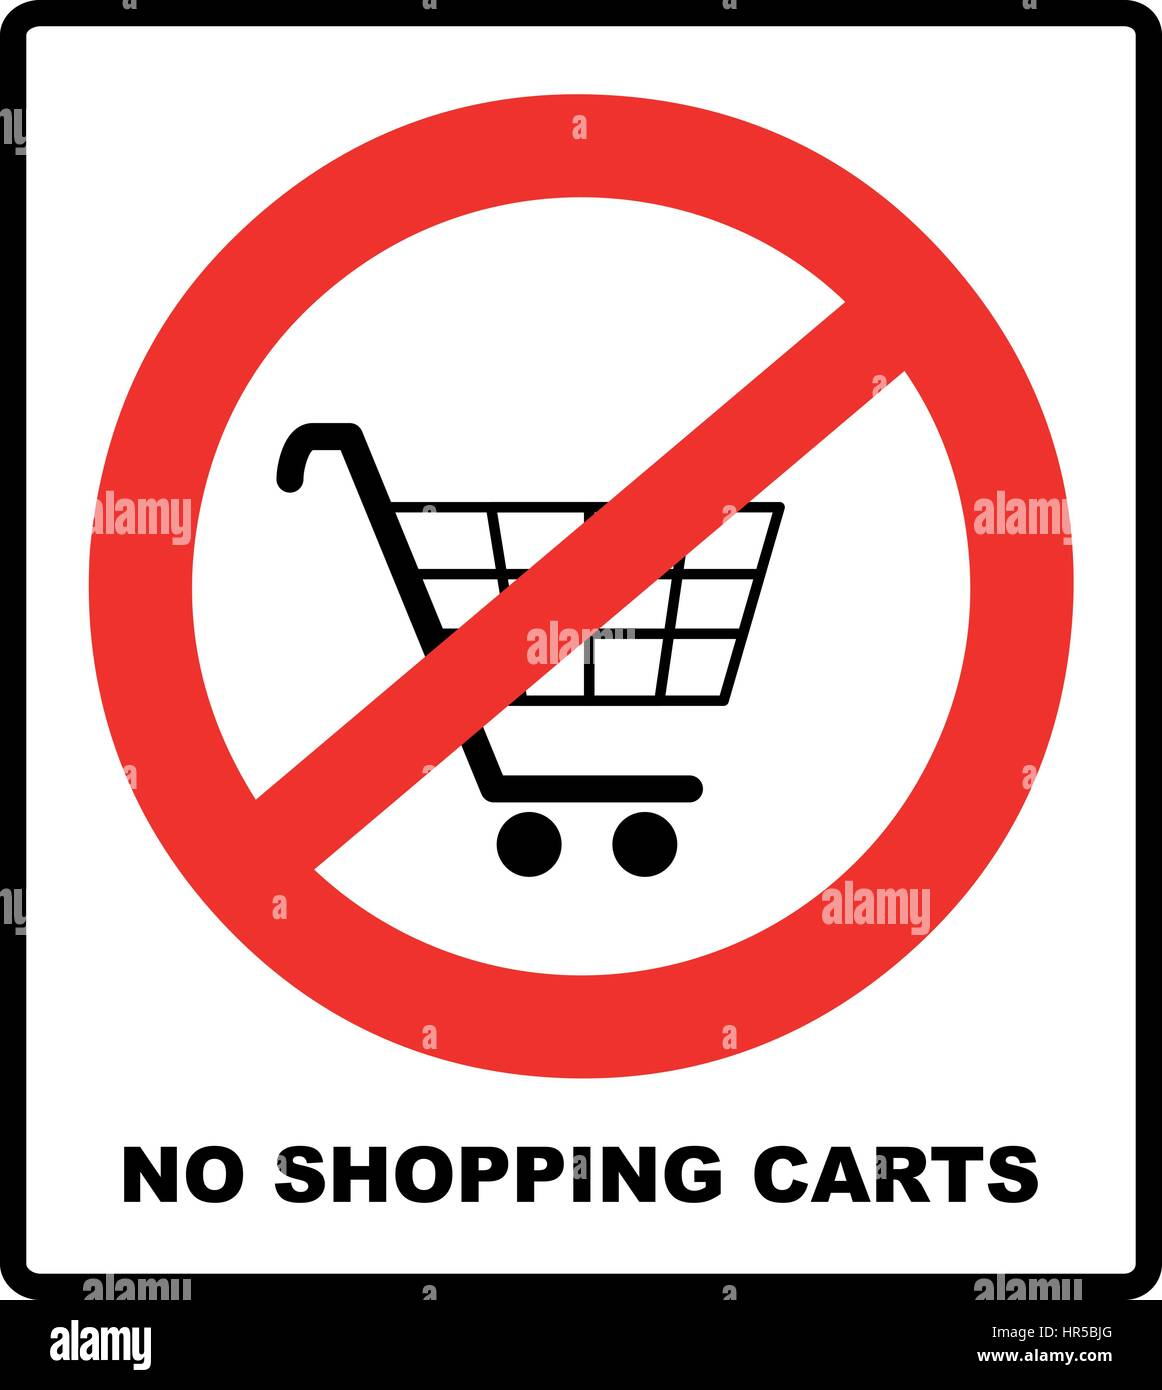 No shopping cart sign vector illustration prohibition symbol in no shopping cart sign vector illustration prohibition symbol in red circle isolated on white warning banner for public places buycottarizona Image collections